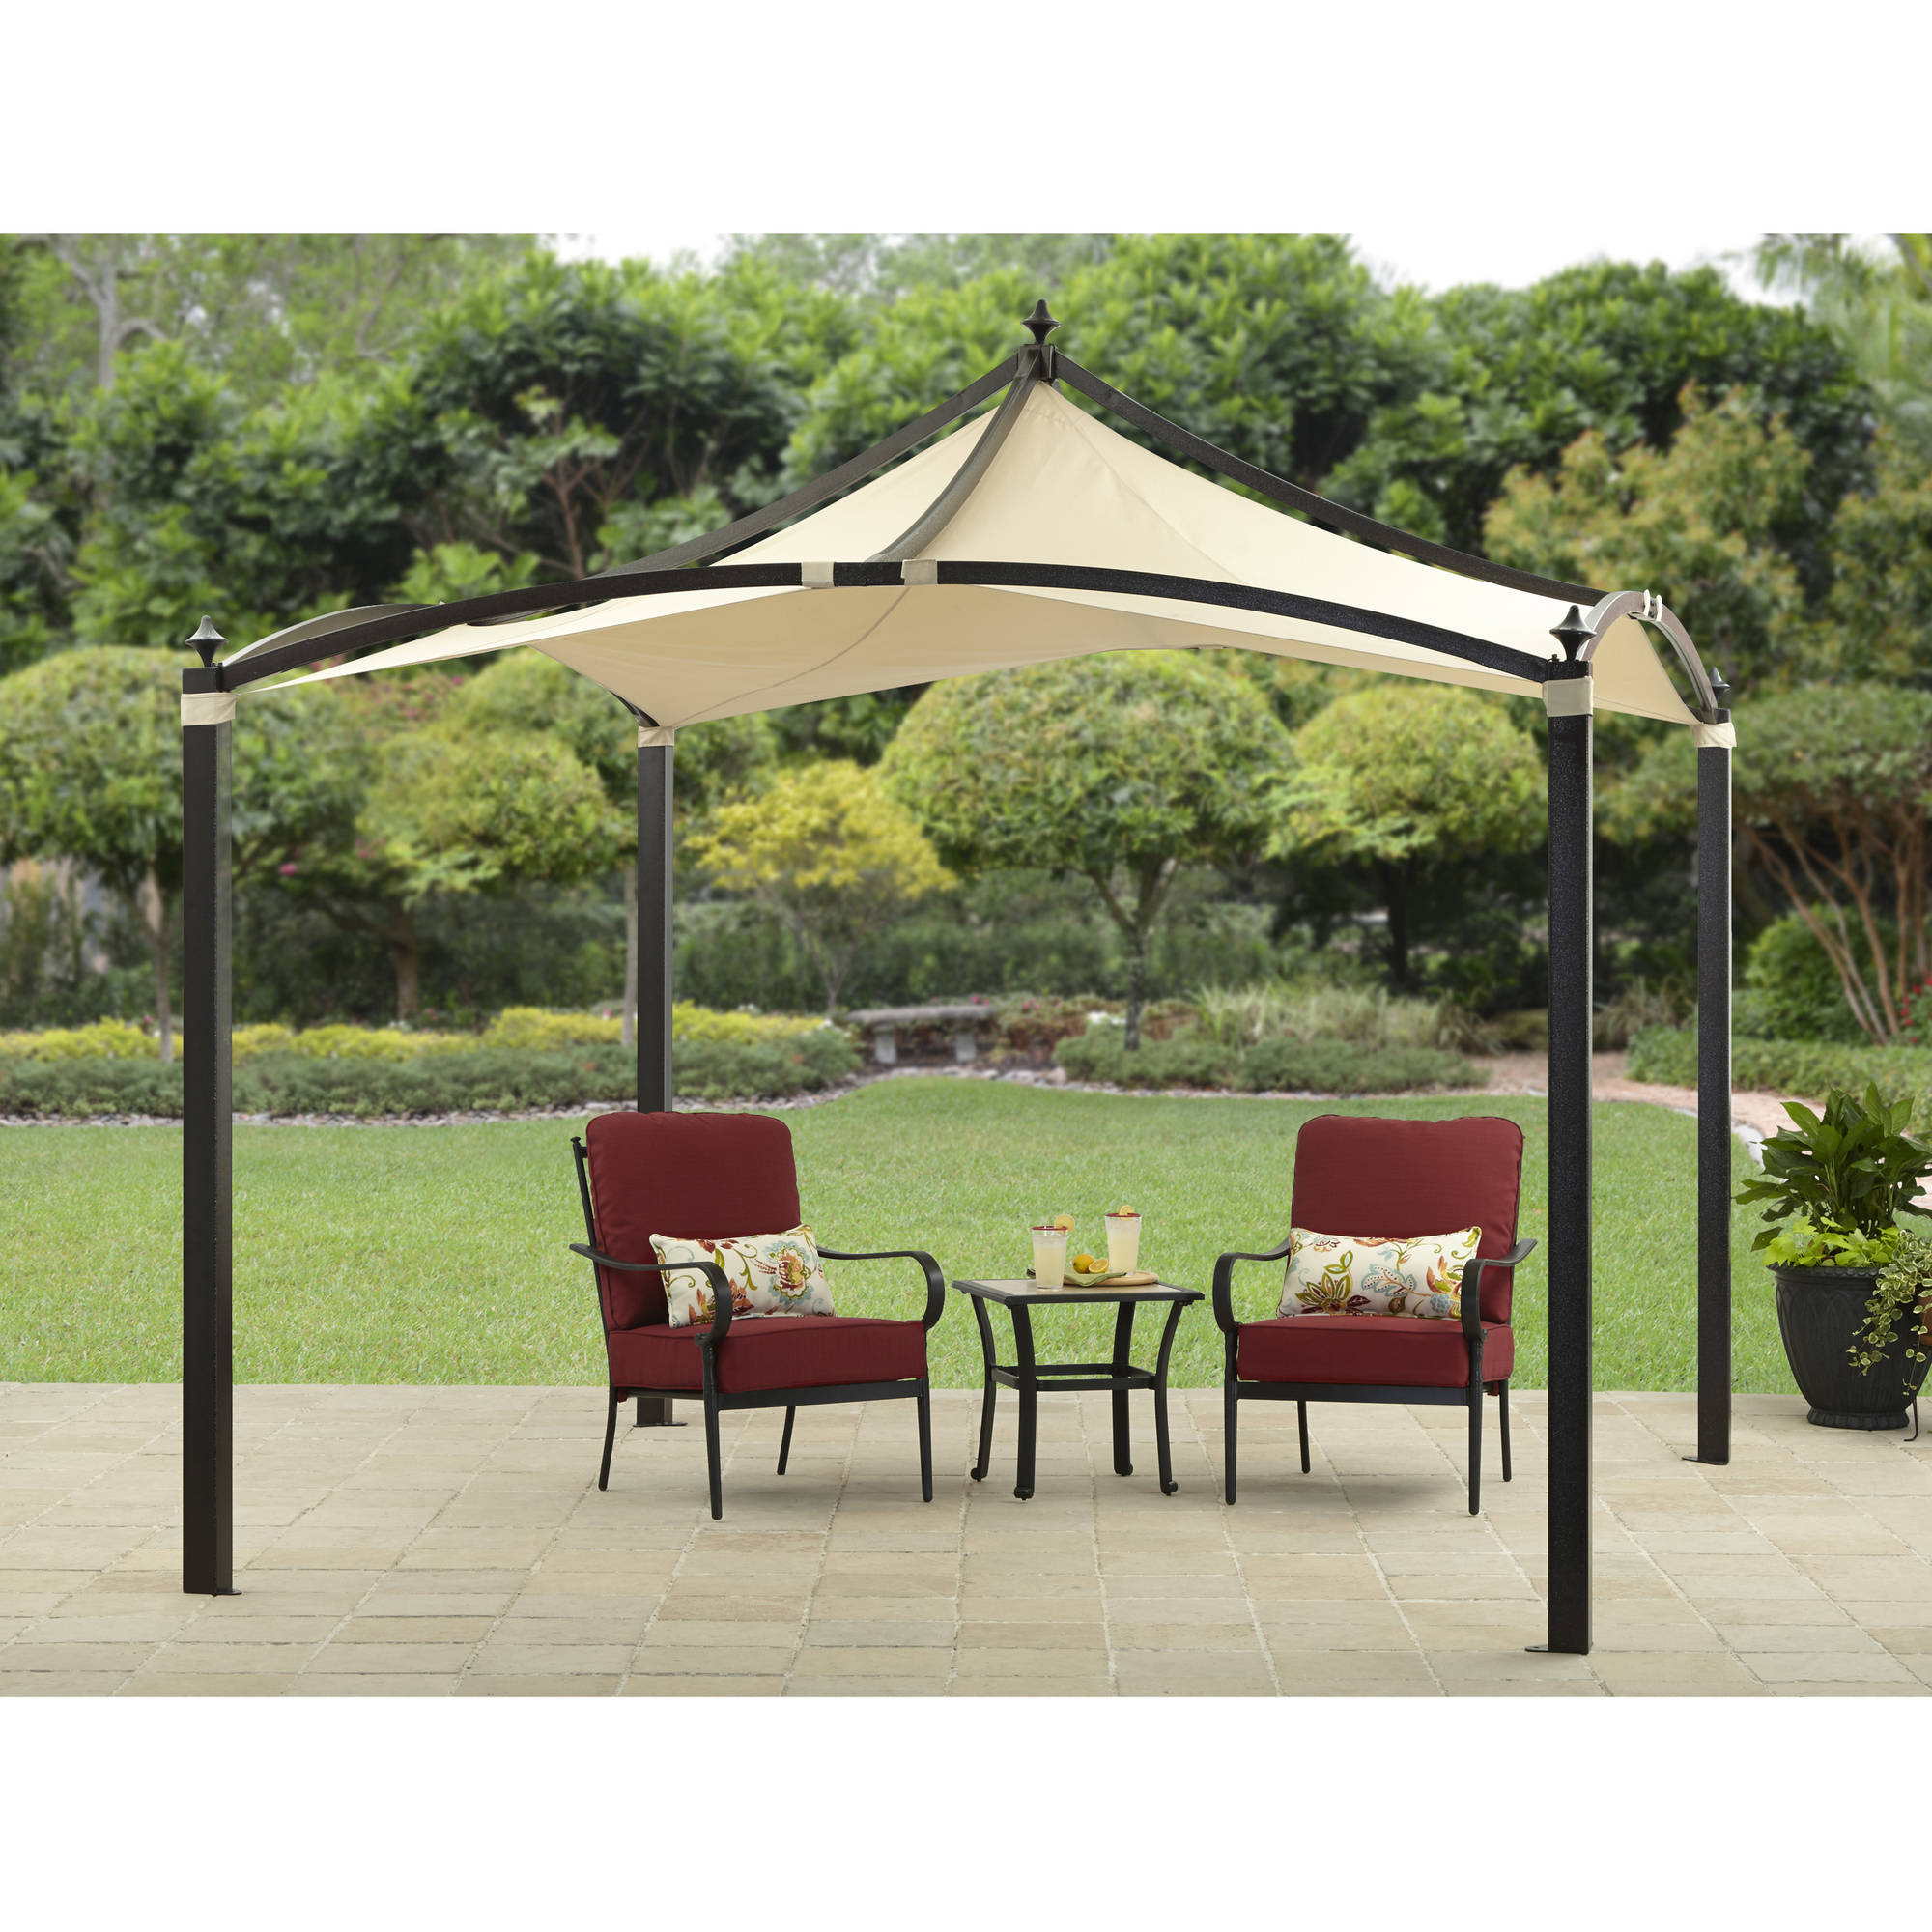 Better Homes and Garden Convair 10' x 10' Pavilion Gazebo by